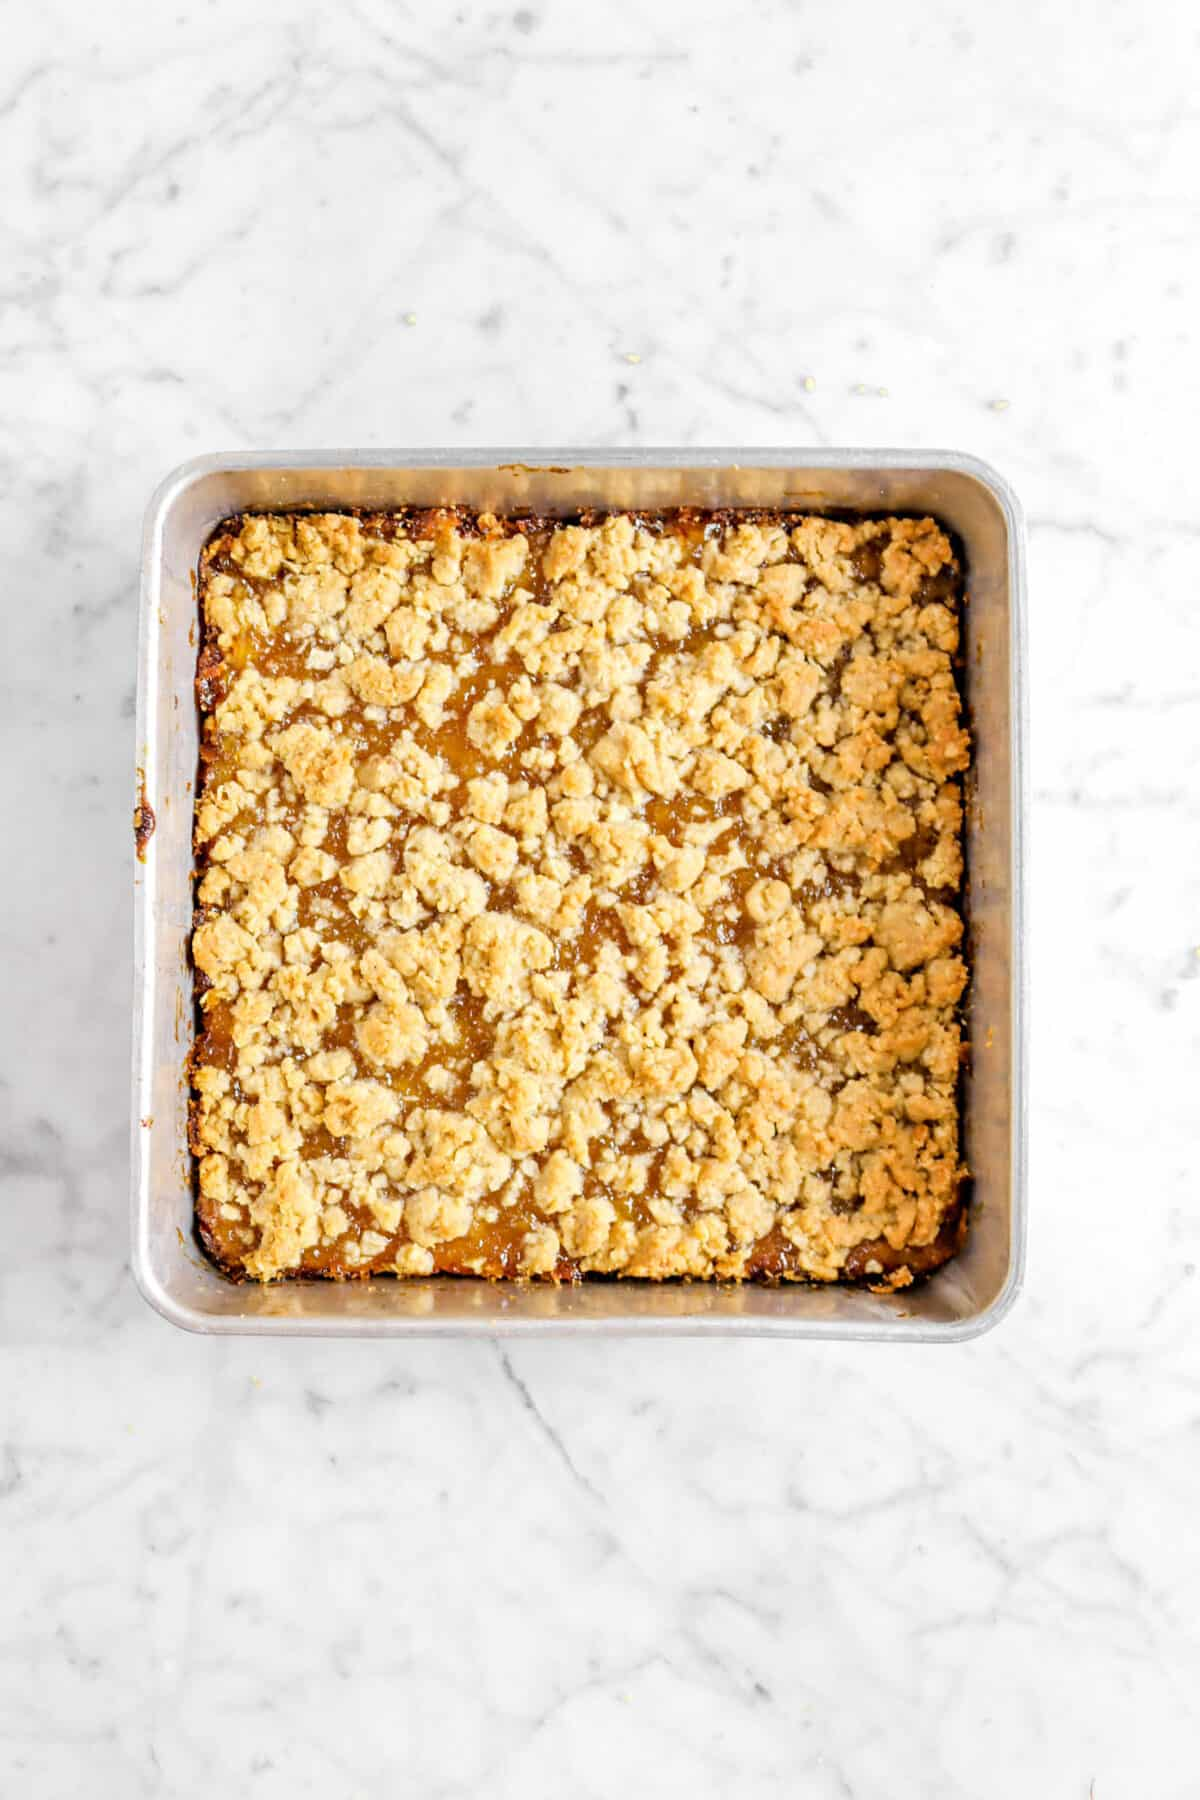 baked peach crumble in square pan